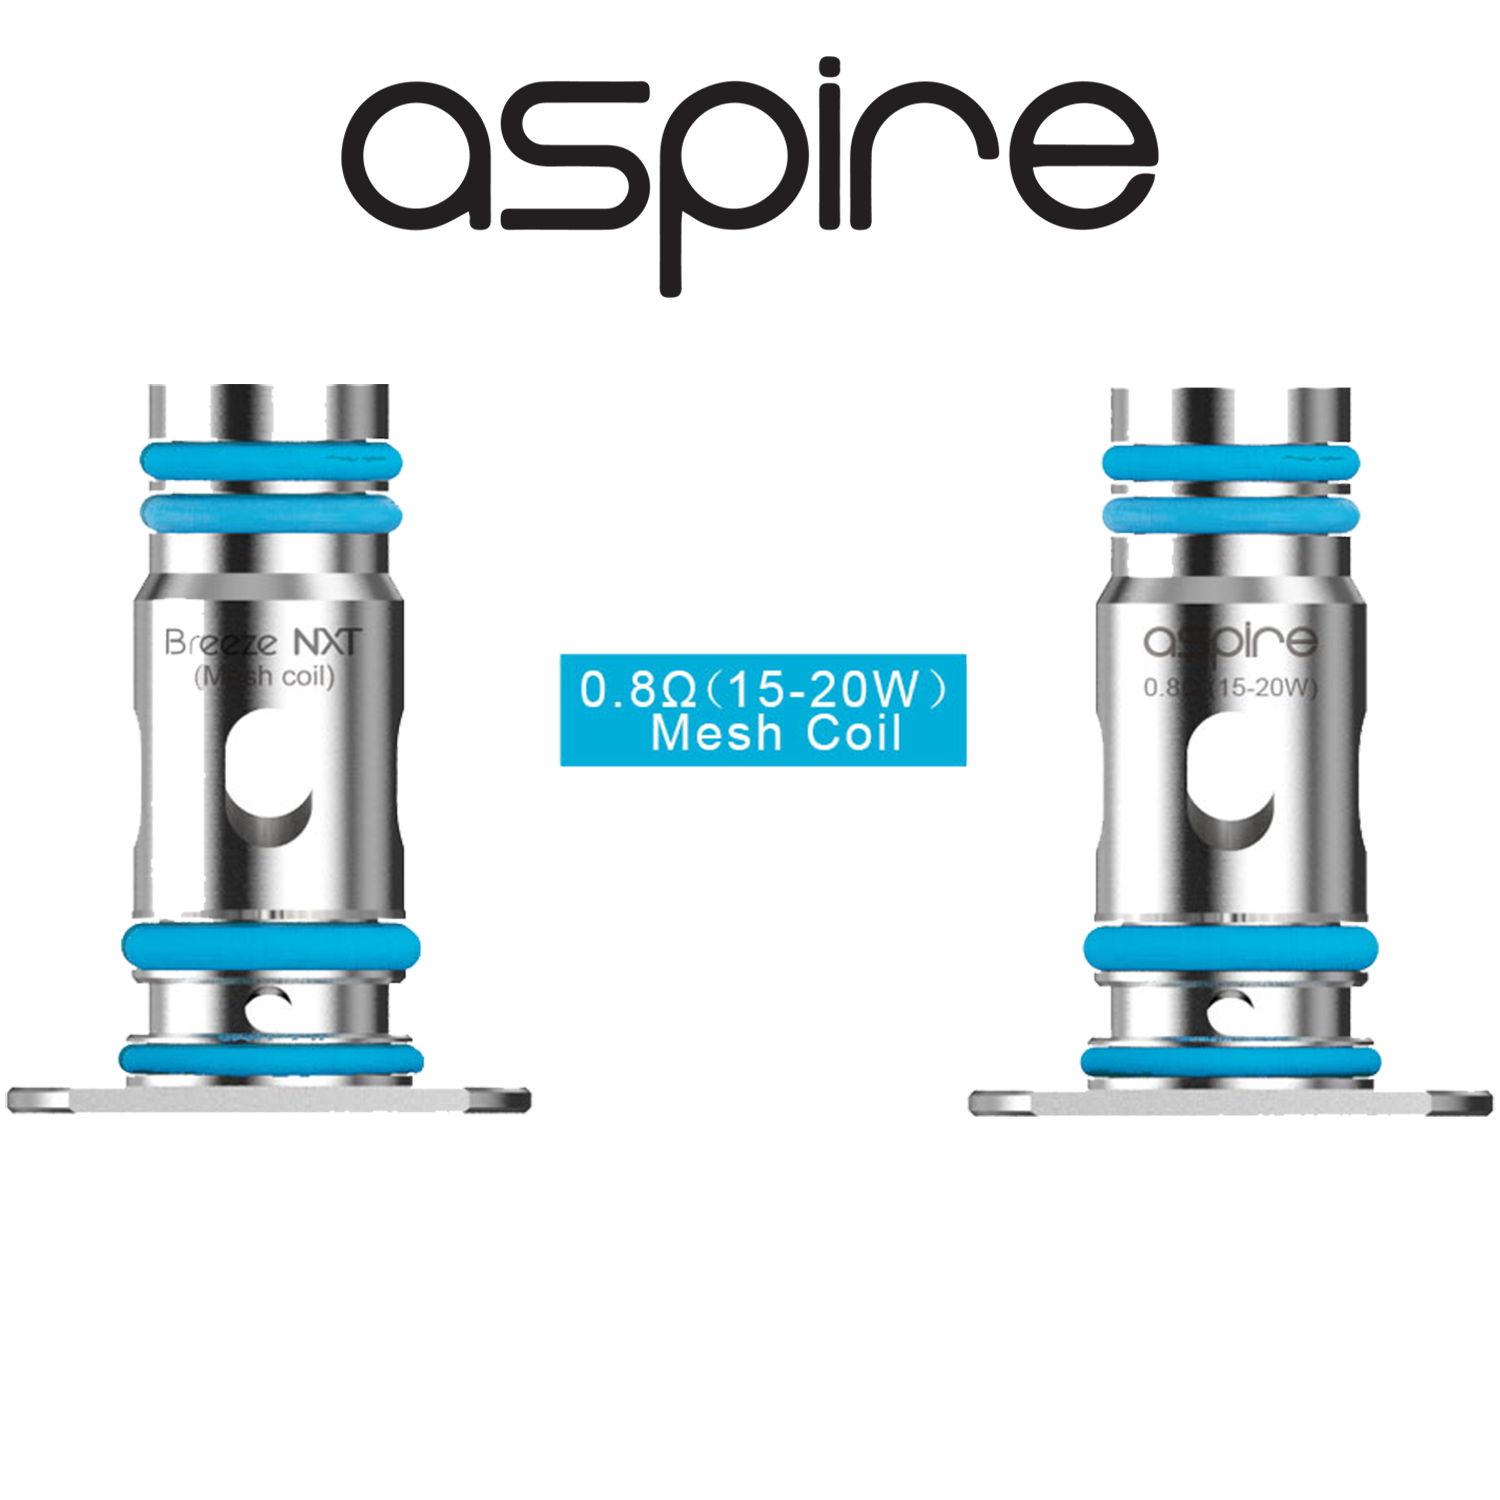 ASPIRE BREEZE NXT Coils (Price Per Coil) - Boss Vapes